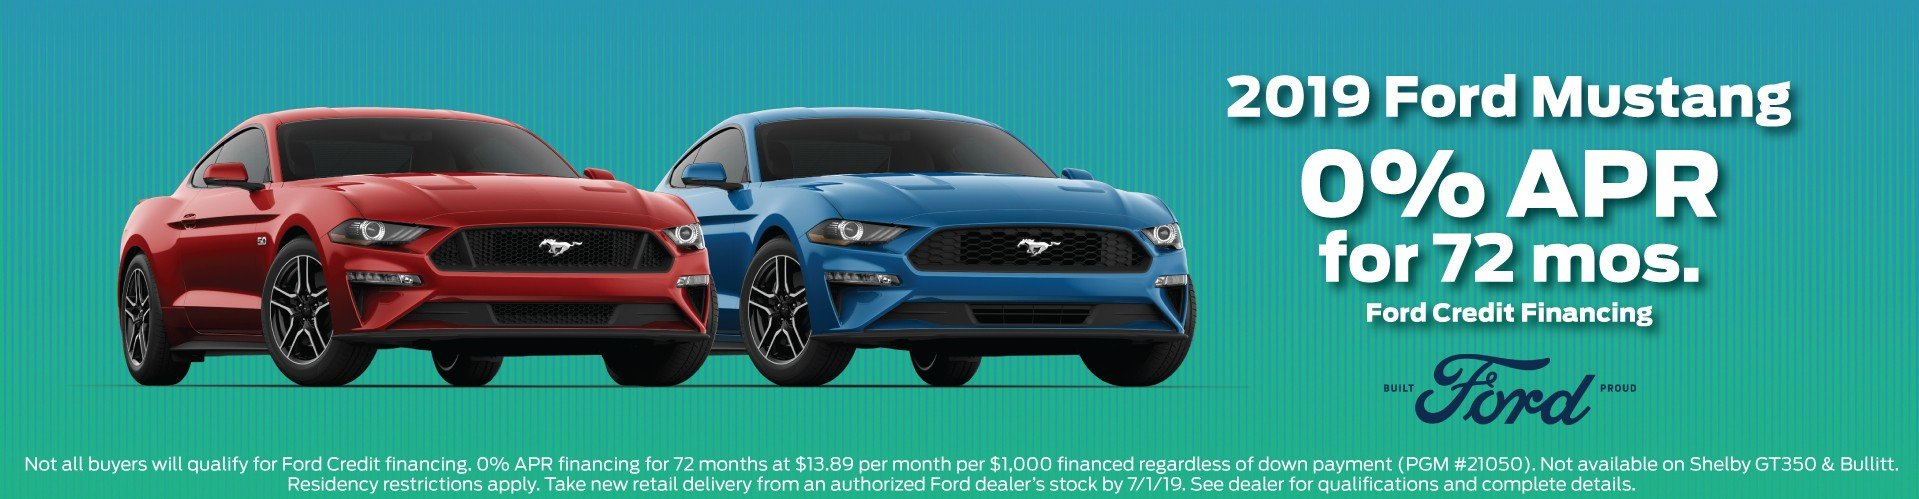 2019 Ford Mustang Offer 5-2019